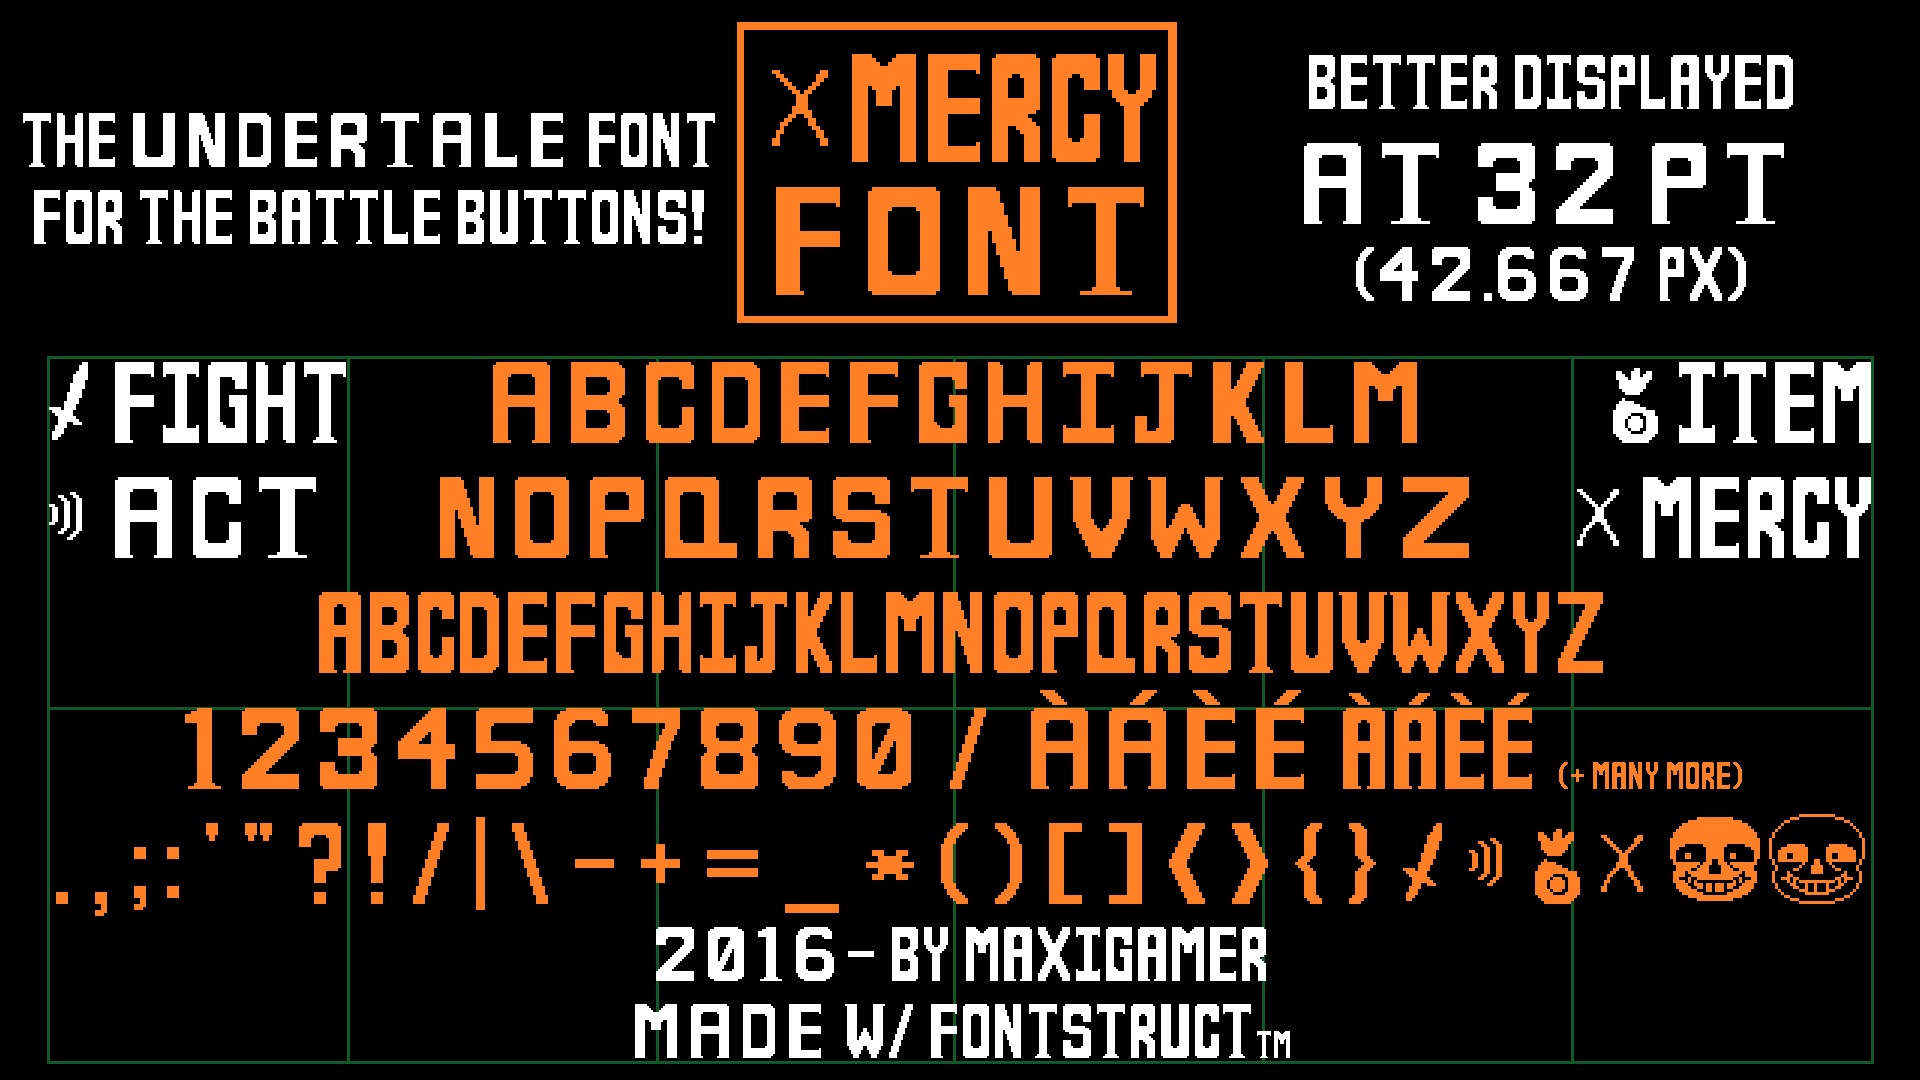 MERCY Font, the UNDERTALE font for battle buttons! by